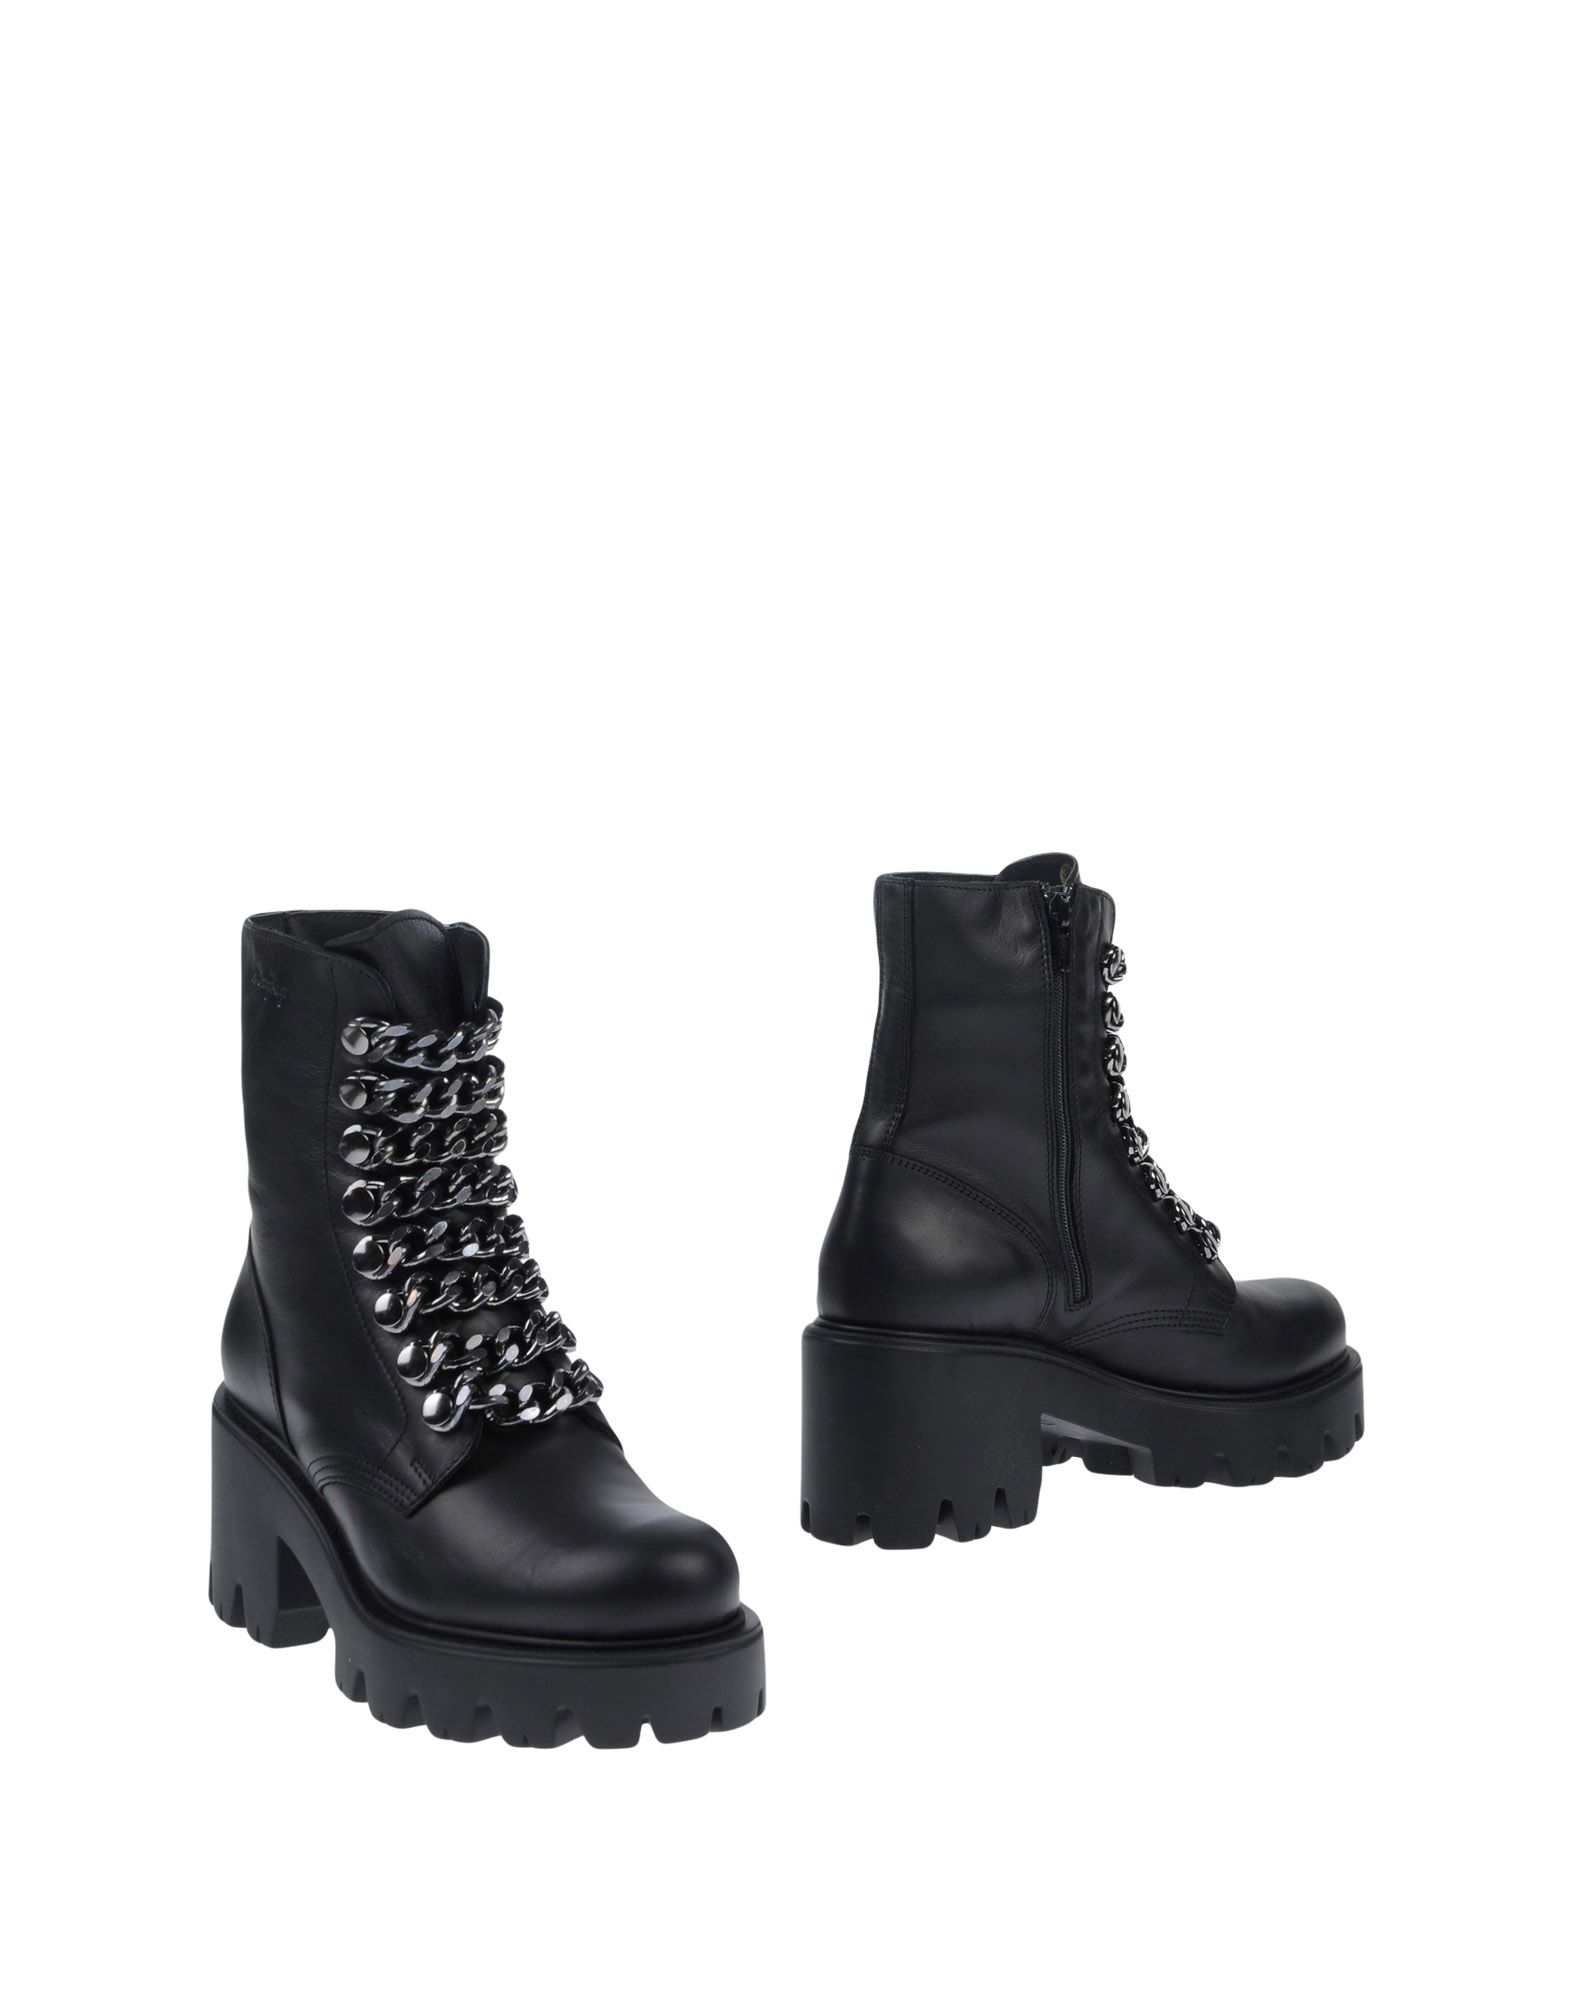 Le Dangerouge Ankle Boot - Women Le Dangerouge  Ankle Boots online on  Dangerouge Canada - 11506300VB 1f0f9a